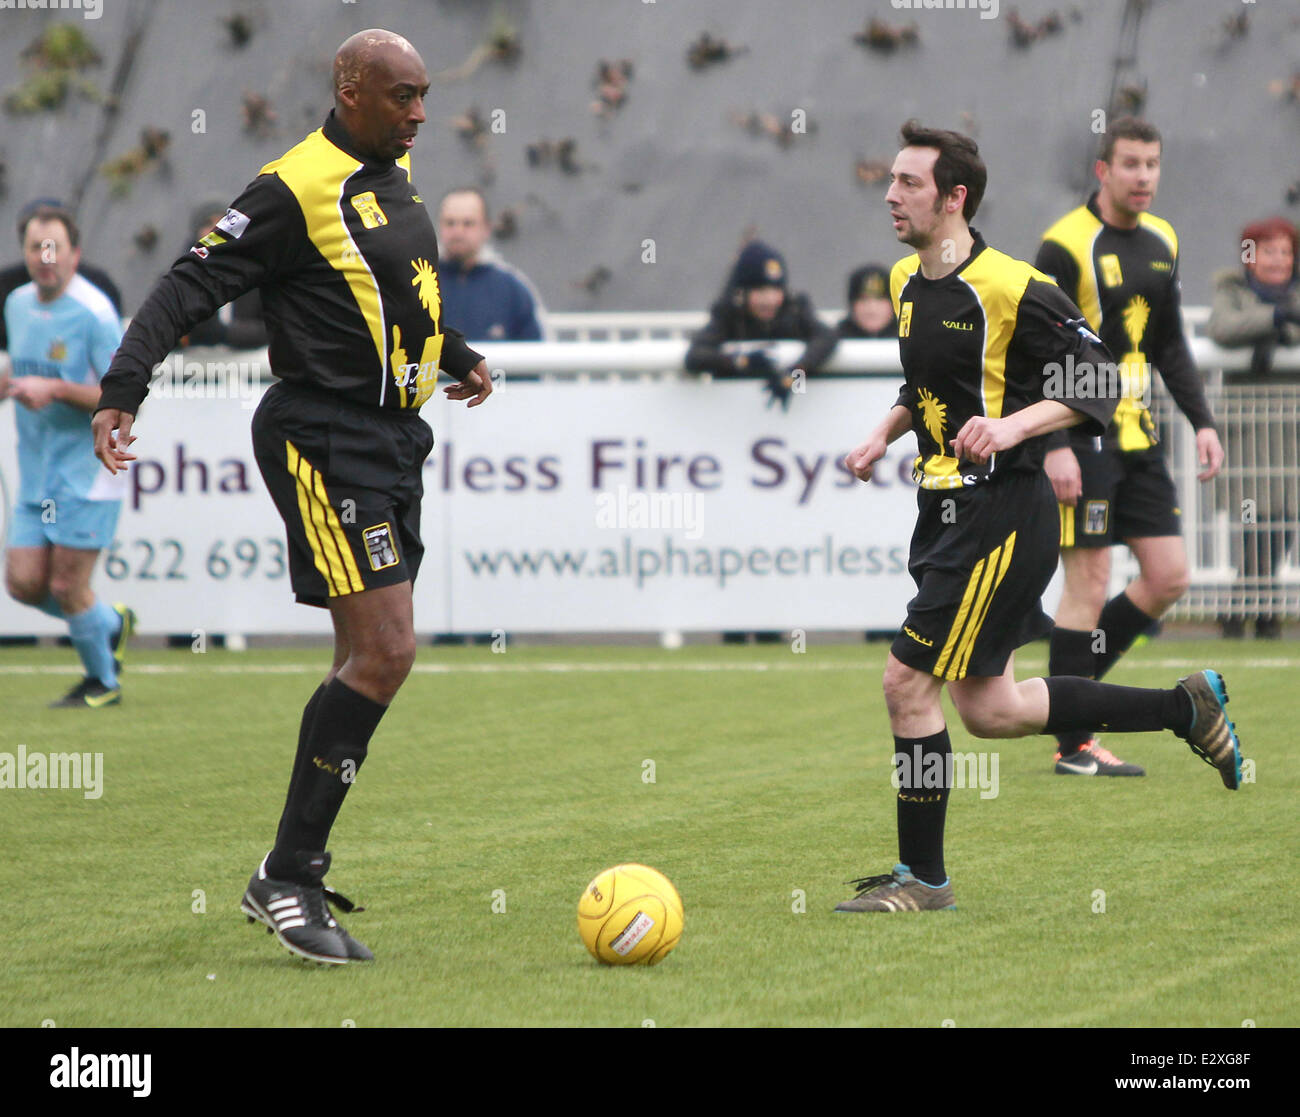 Ralf Little playing for the Lashings All-Stars in a charity